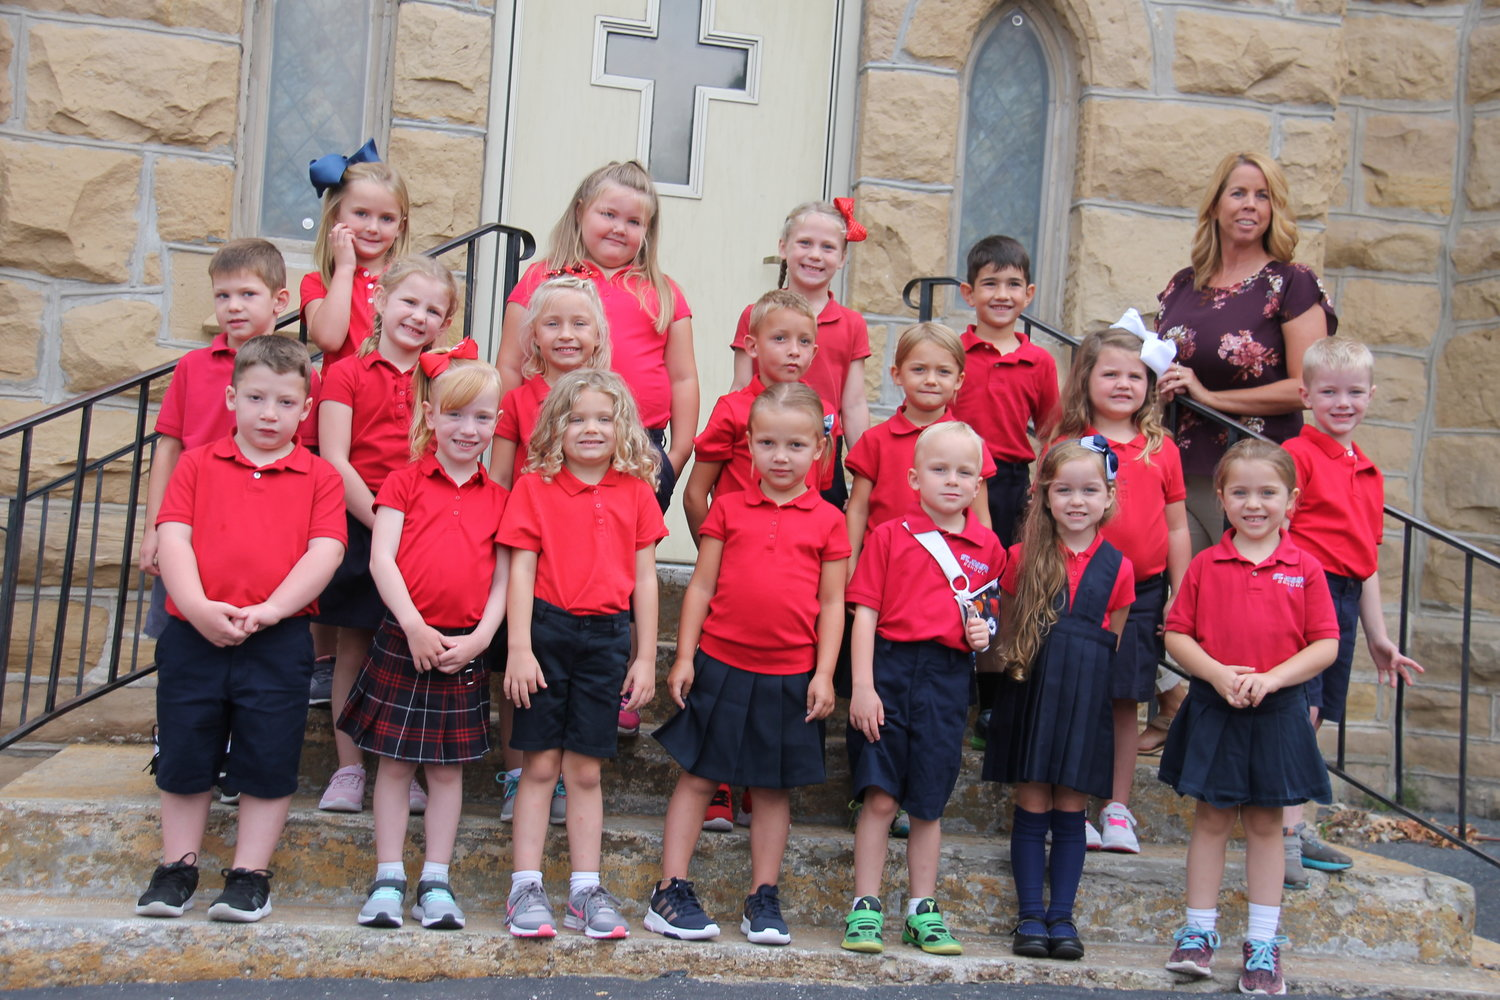 The class of 18 kindergarteners gather for a photo on the steps of St. Joseph Church in Salisbury on their first day of school.